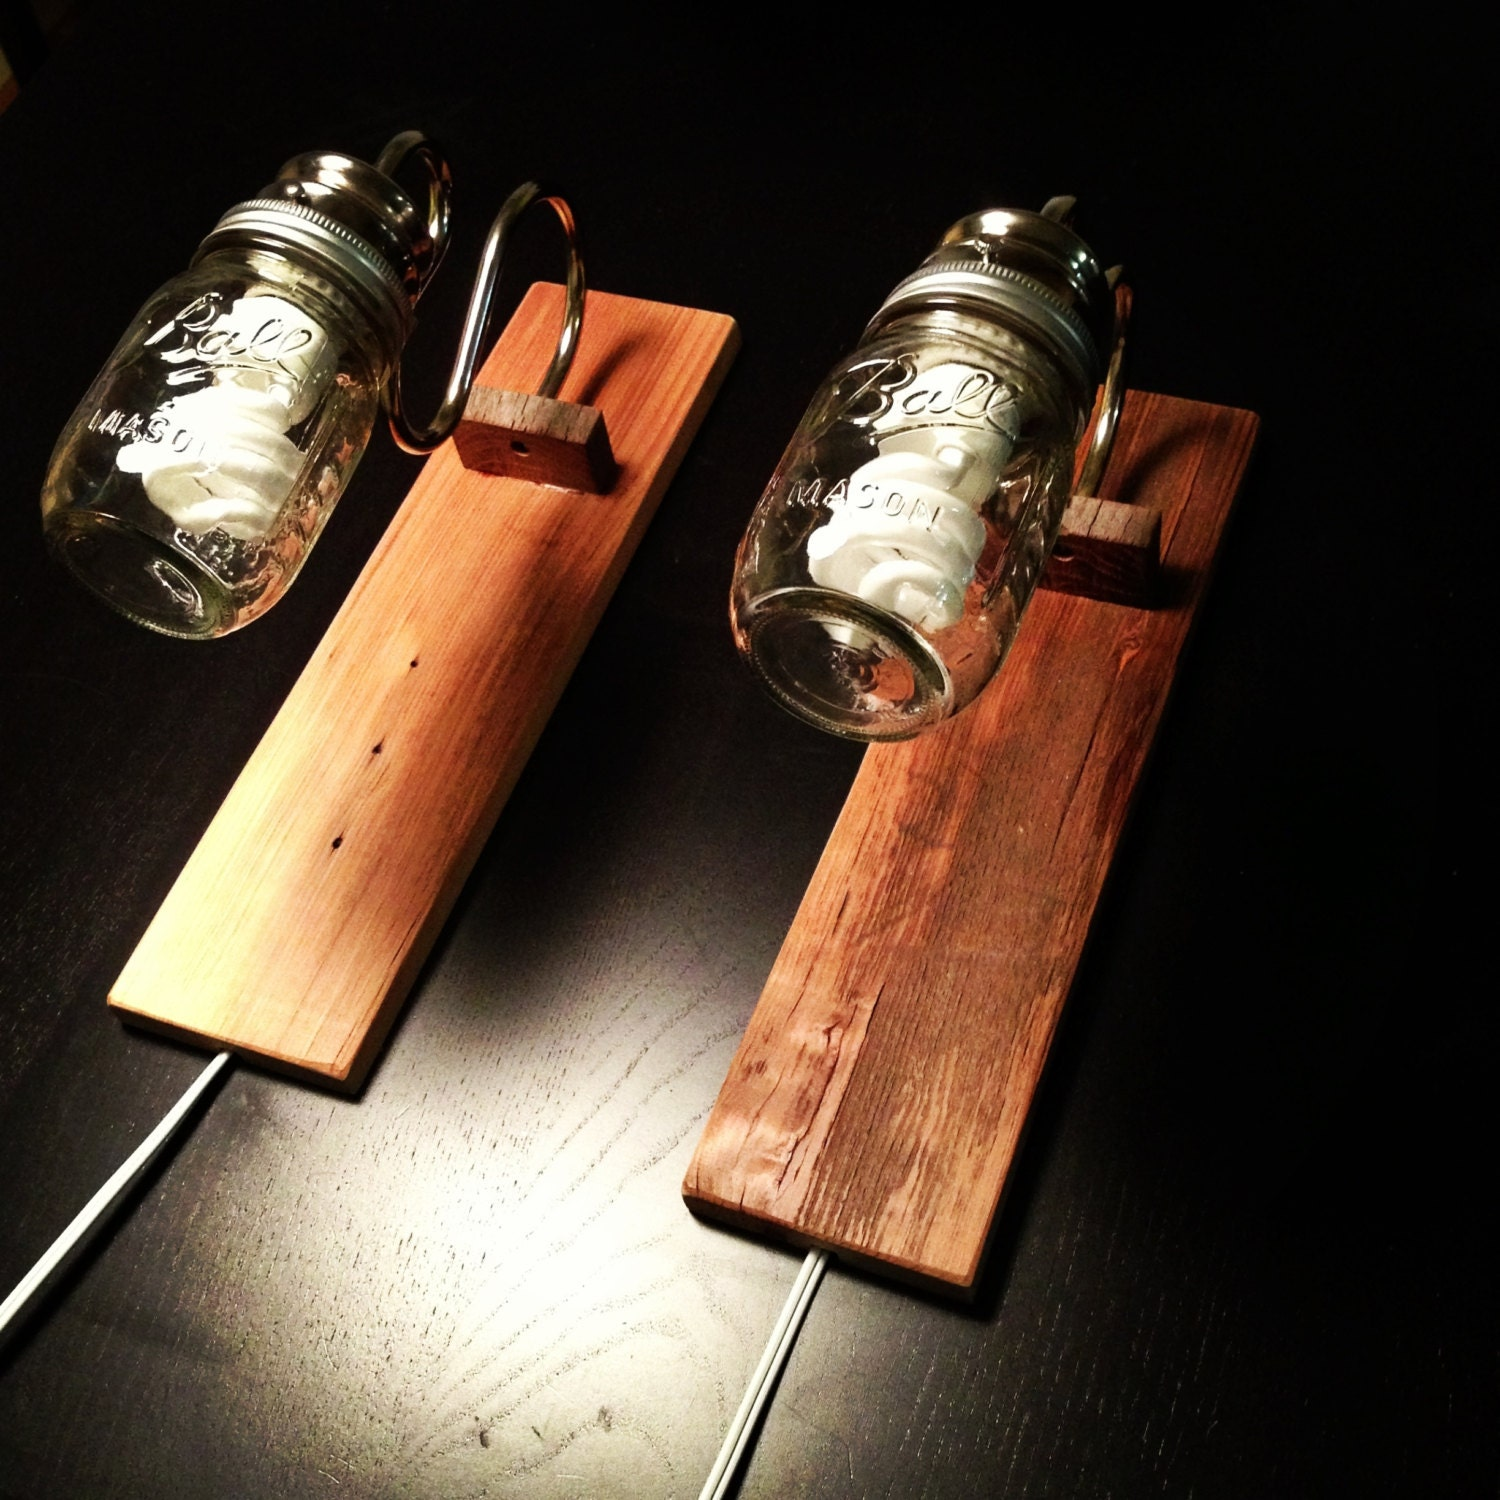 Rustic Bedside Wall Lamps : Etsy - Your place to buy and sell all things handmade, vintage, and supplies